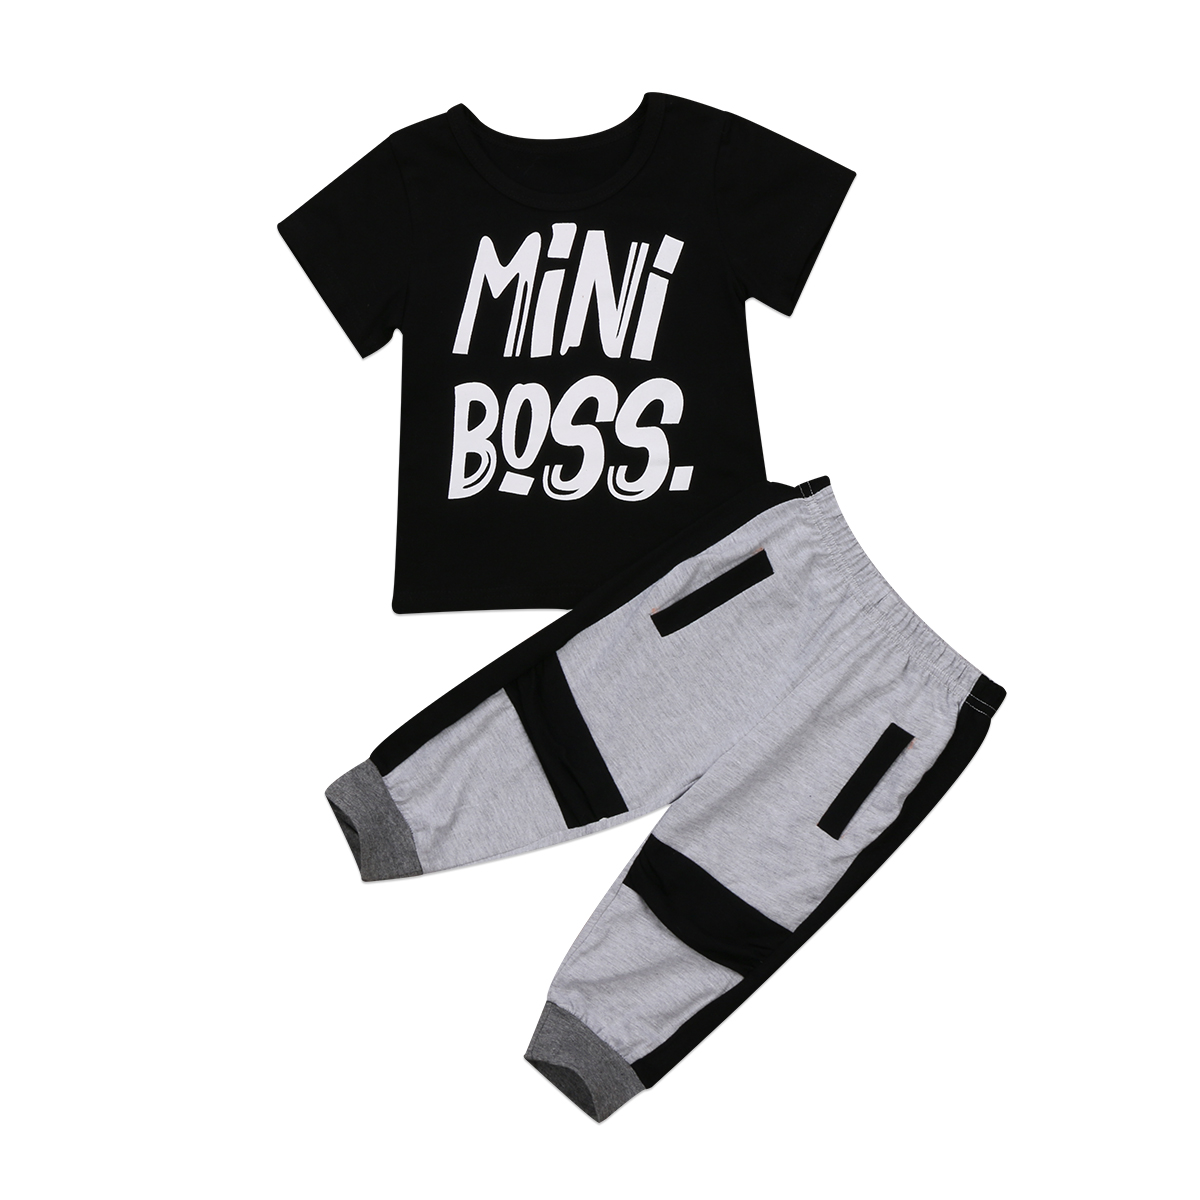 2Pcs Toddler Kids Baby Boy Clothes Sets T-shirt Tops Short Sleeve Pants Harem Outfits Set Cotton Clothing Baby Boys 1-6T doershow latest african shoes and bag set for party italian fashion women sandal with matching bags set with rhinestones hjn1 12